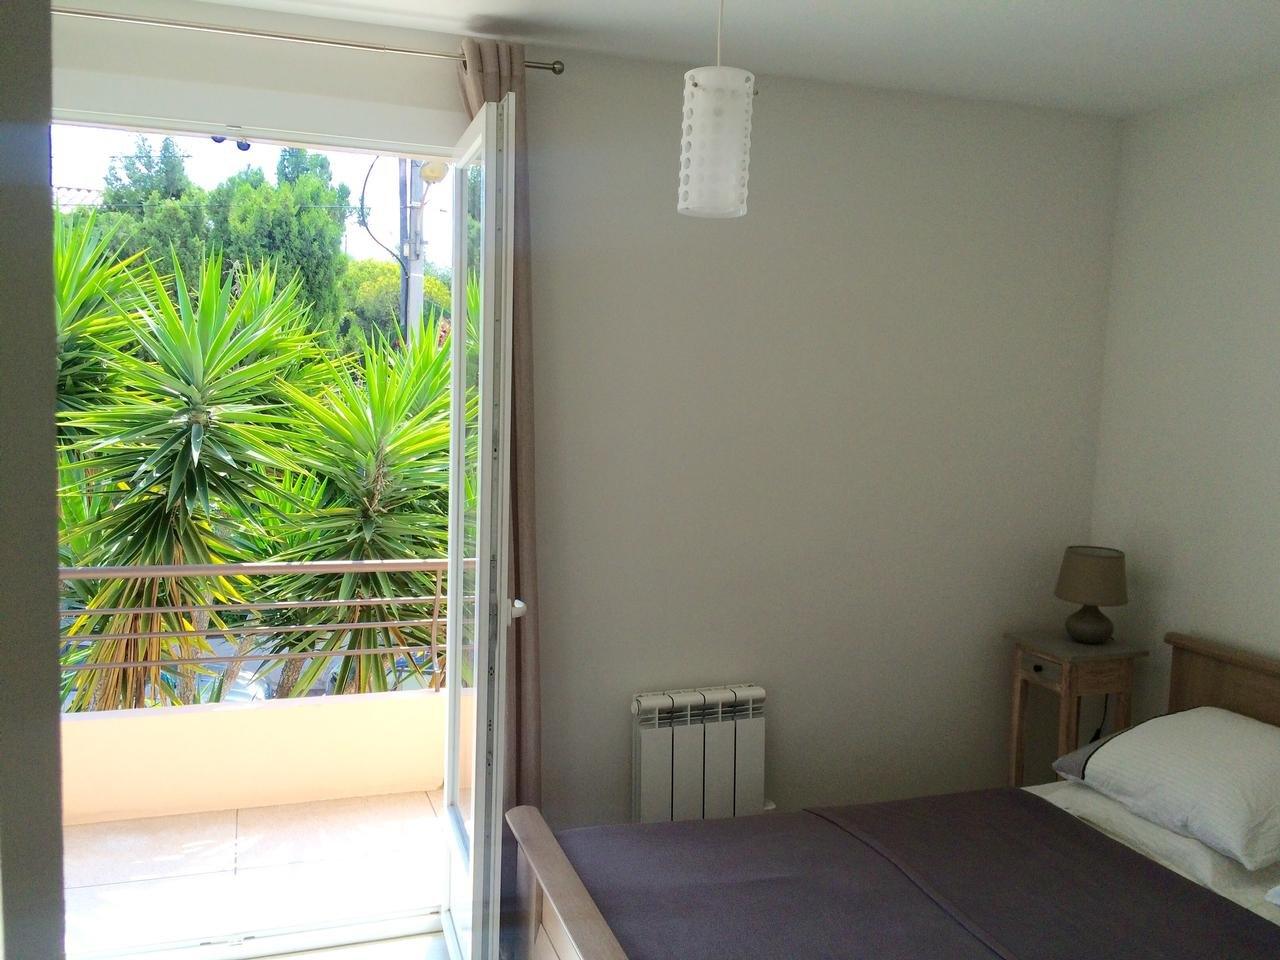 Appartement  3 Rooms 54m2  for sale   245000 €